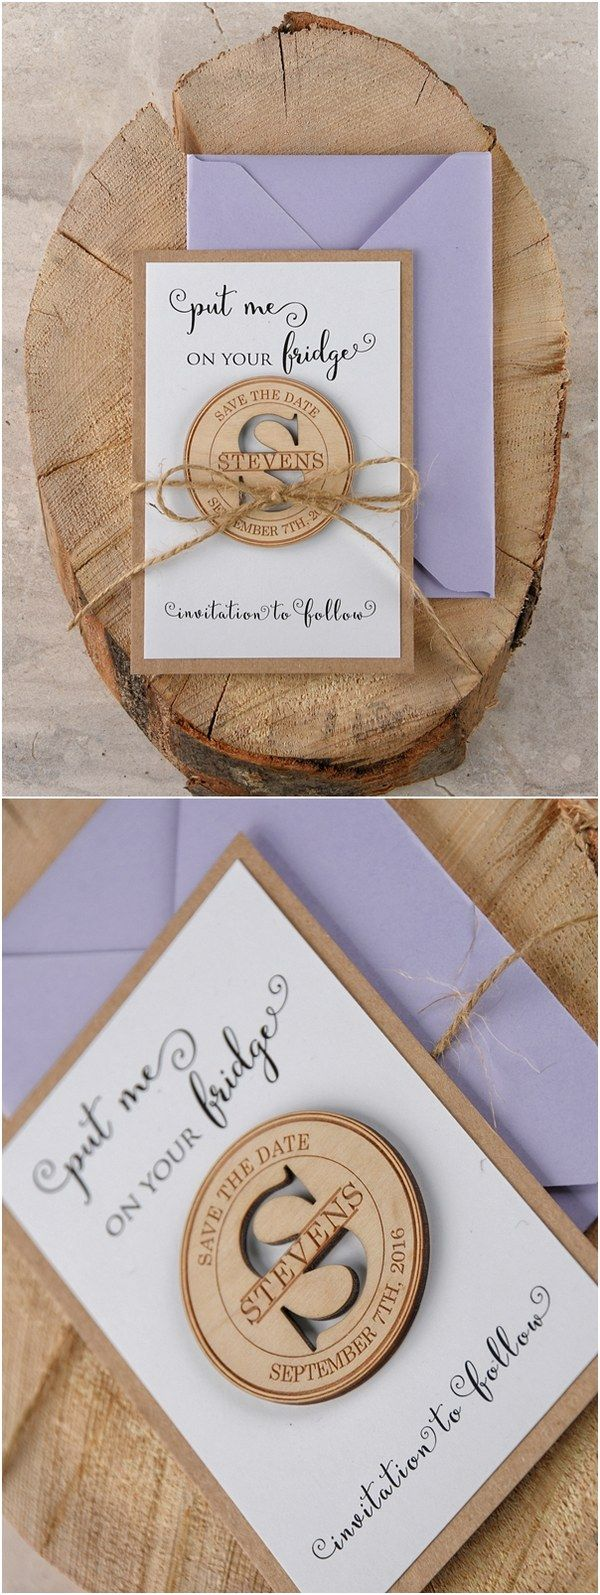 Rustic lavender leaser cut wood save the dates @4LOVEPolkaDots